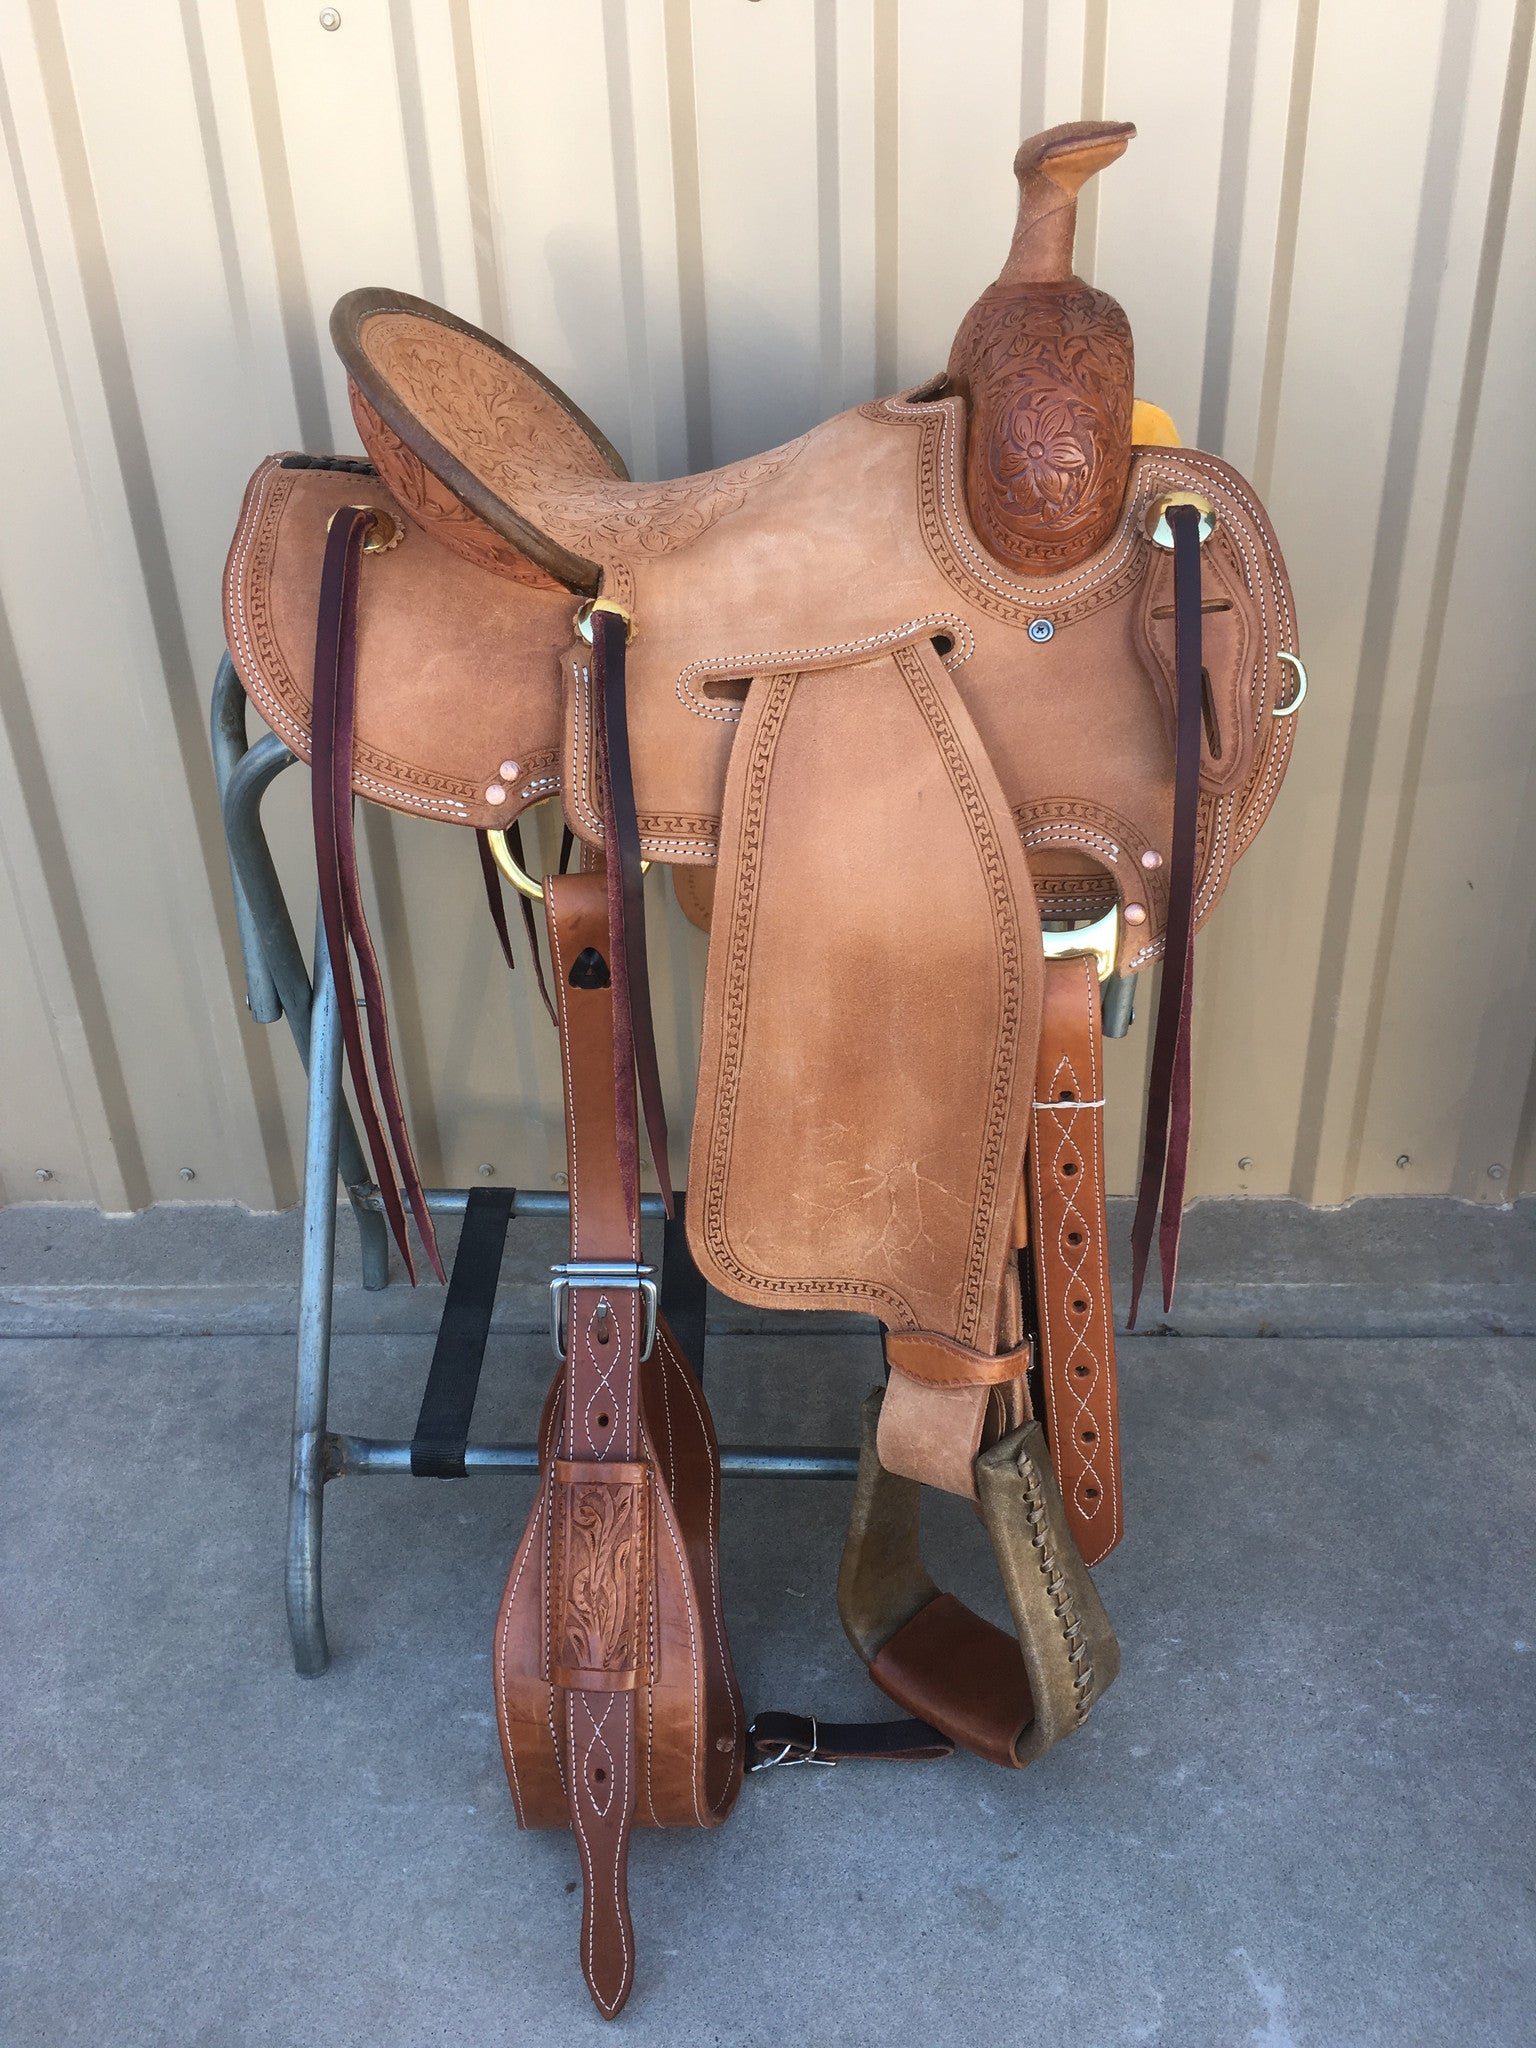 Corriente Strip Down Team Roping Saddle SB119B - The Sale Barn - 1